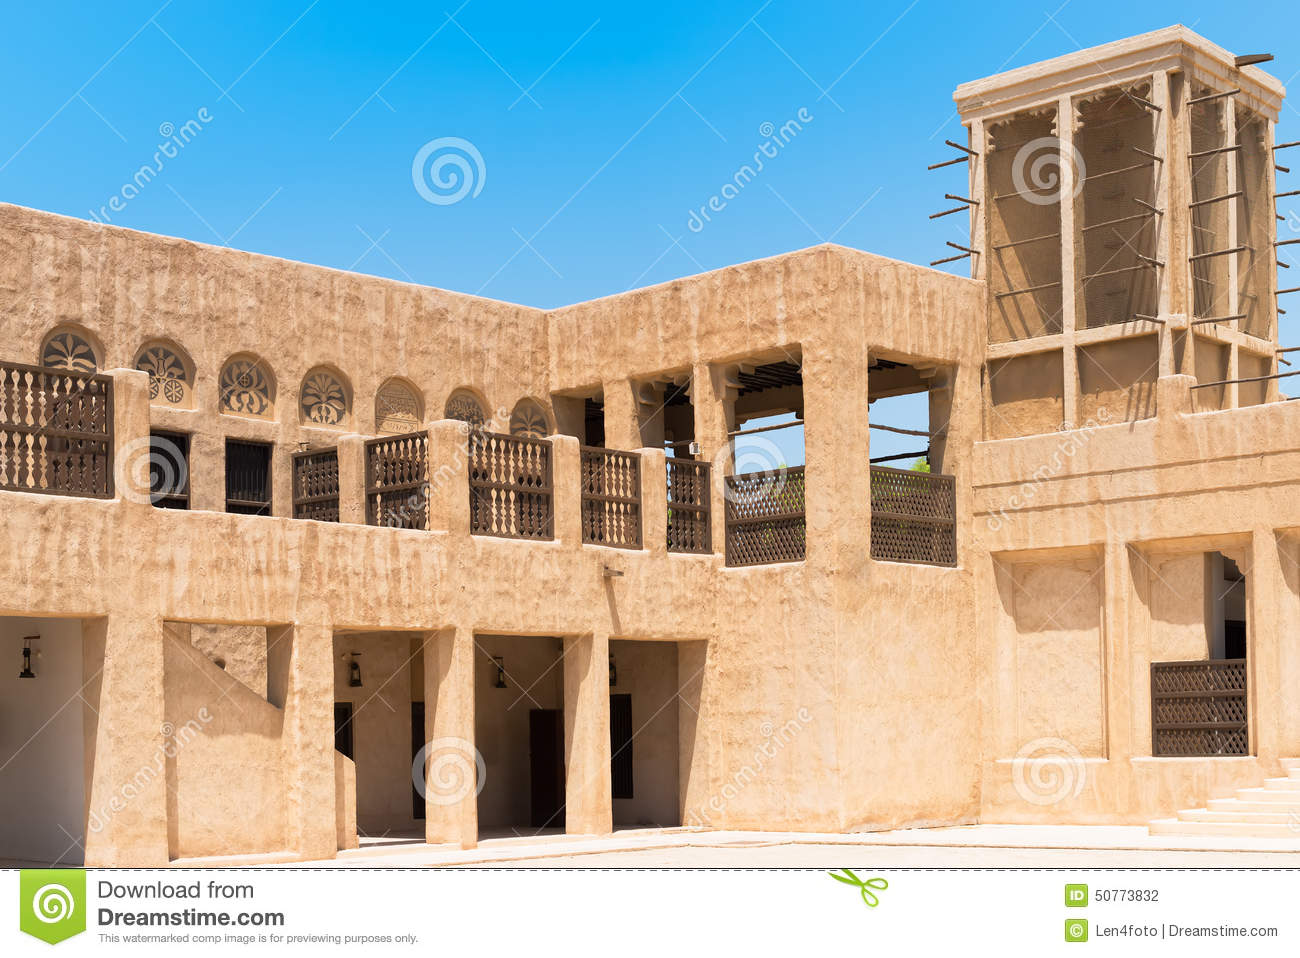 Draw A Houseplan Heritage House In Dubai Stock Photo Image 50773832